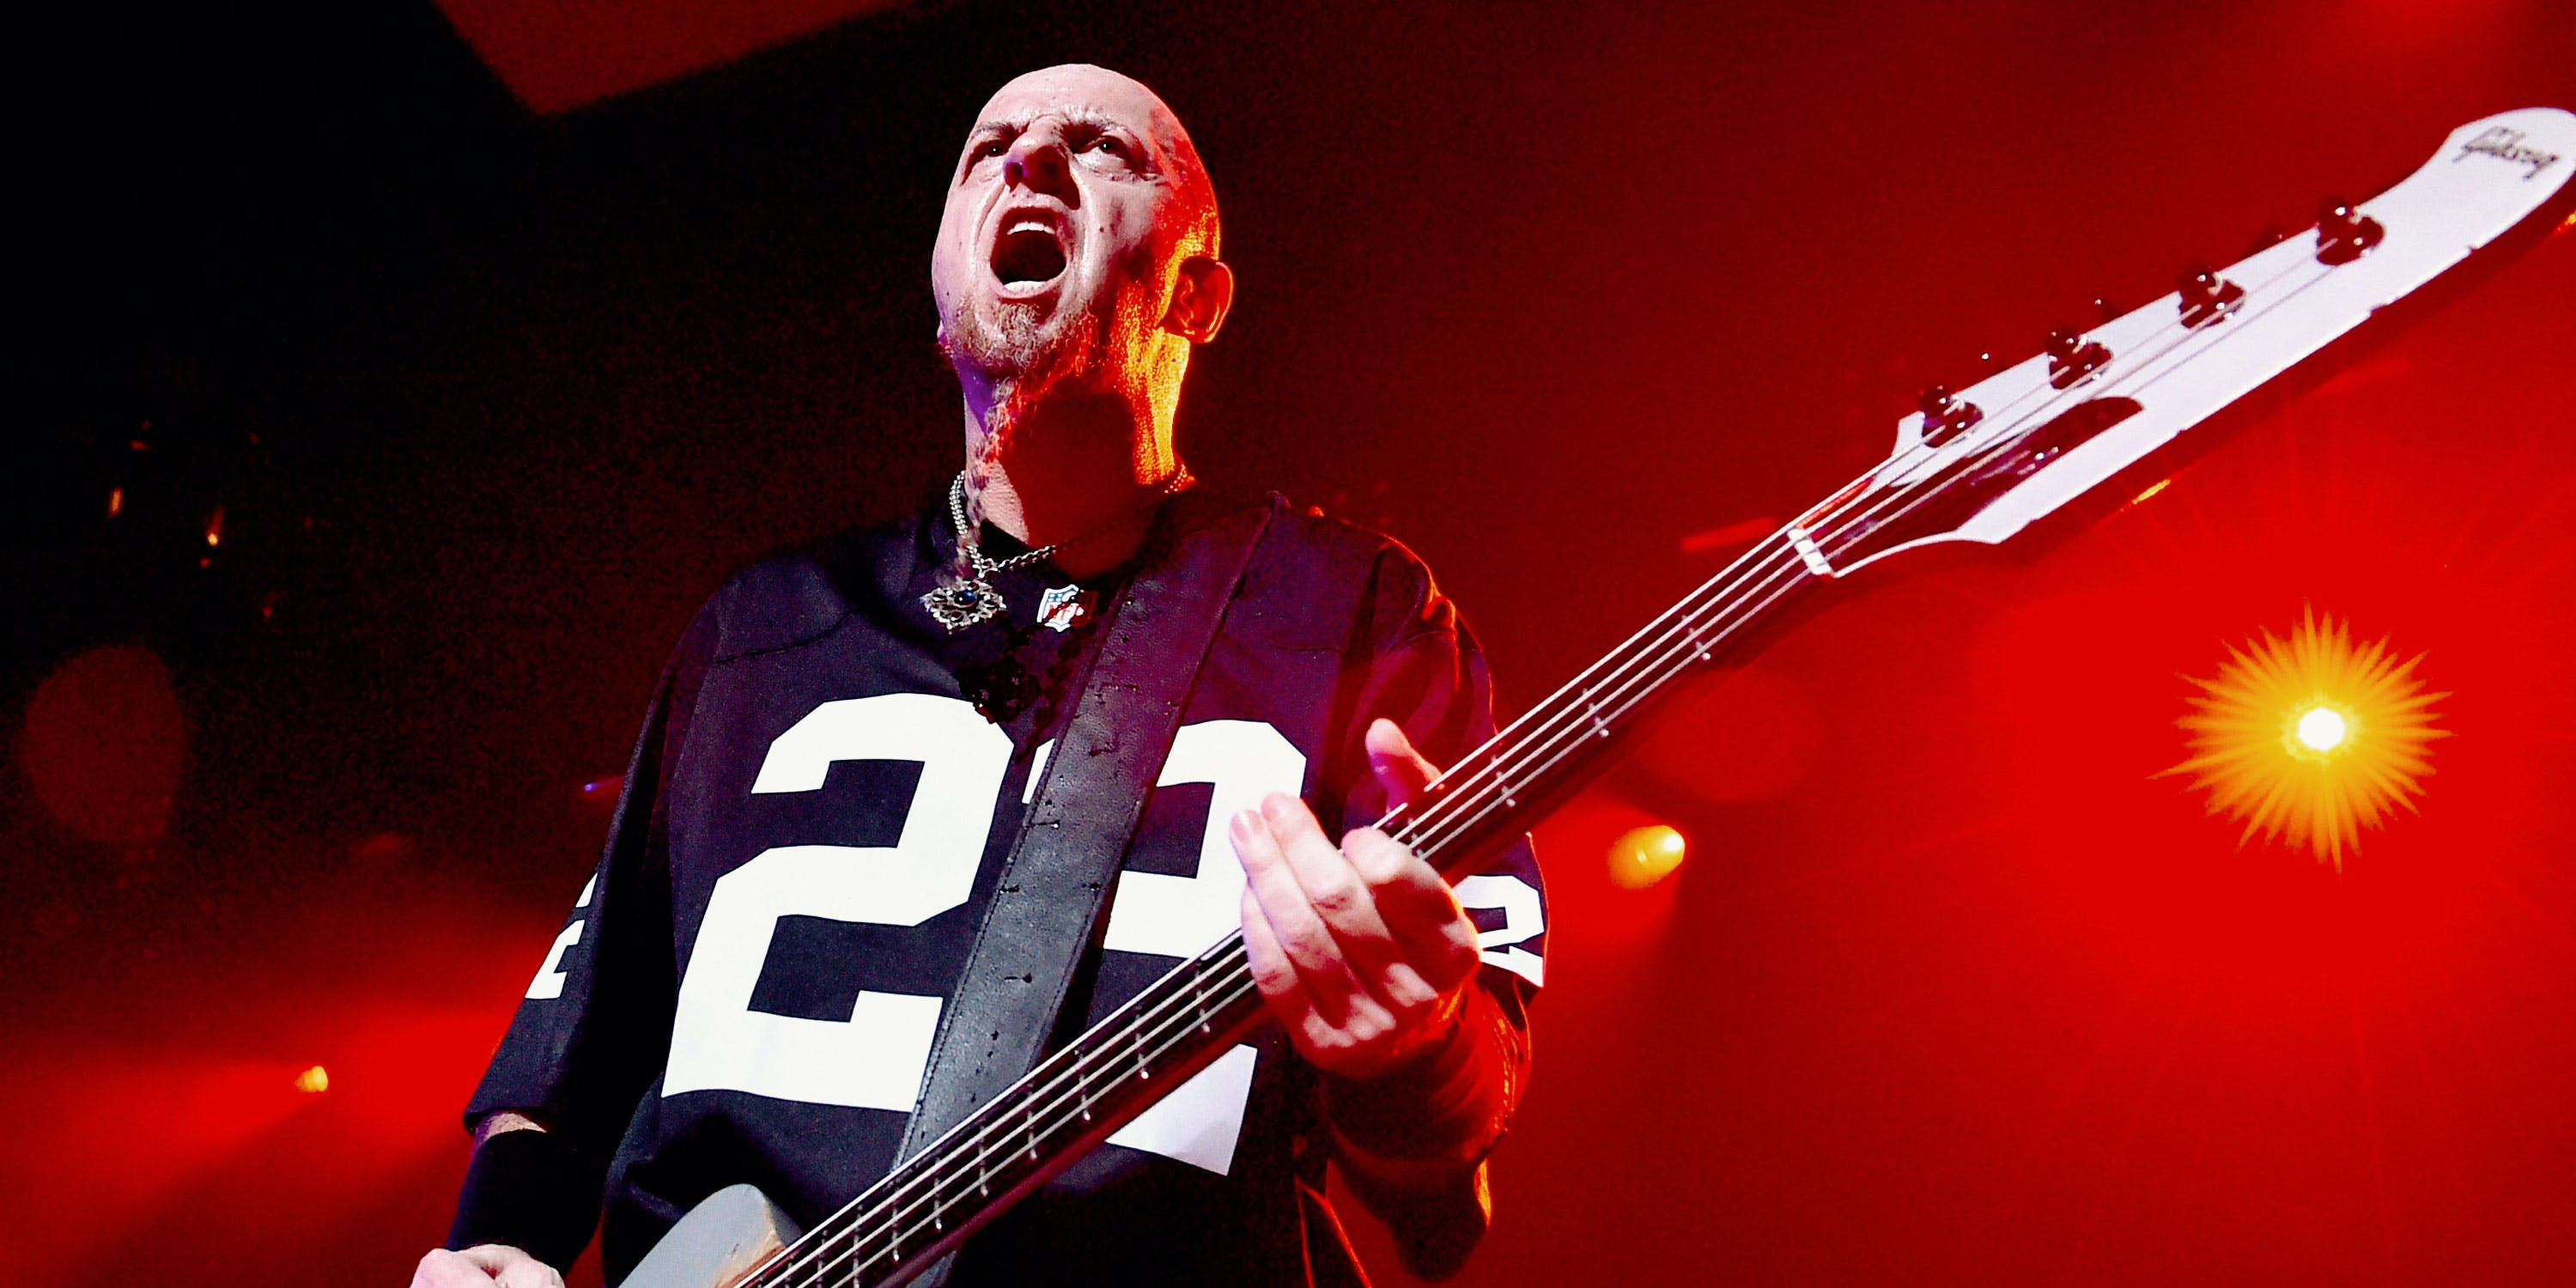 System of a Down Bassist Gets Into Weed With 22Red. Here, he is shown performing at The Forum on April 6, 2015 in Inglewood, California.